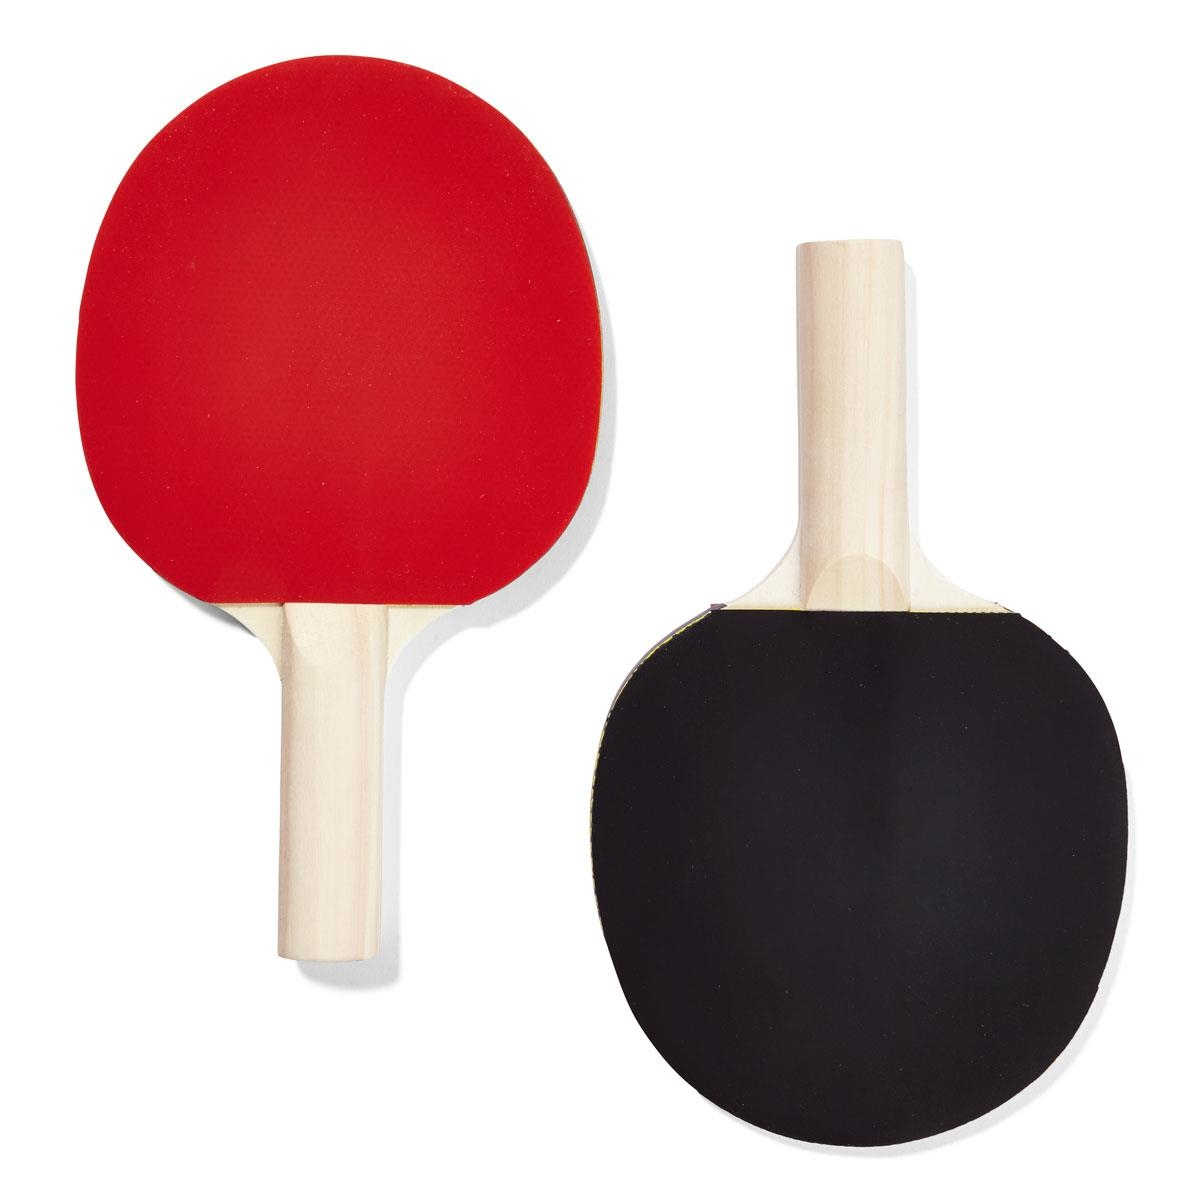 table tennis bats. table tennis bats g